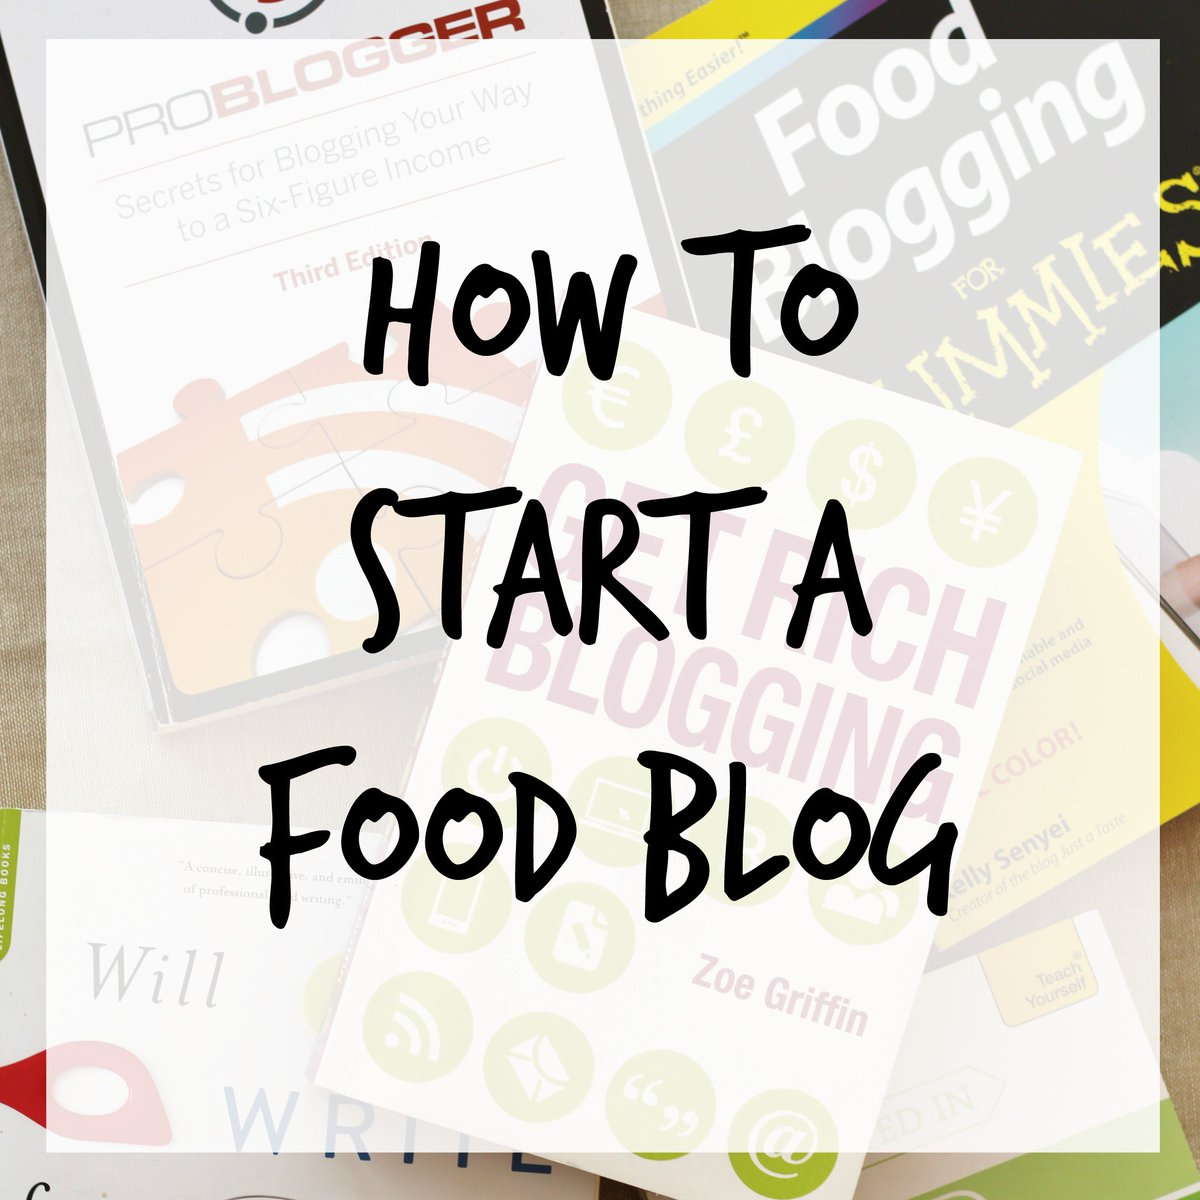 Is your #newyearsresolution to start a #foodblog in 2017? Here&#39;s how to do it:  http:// ow.ly/UYlx307tRgH  &nbsp;   #blogging #foodblogging #resolutions<br>http://pic.twitter.com/sHF3a5Eh5P